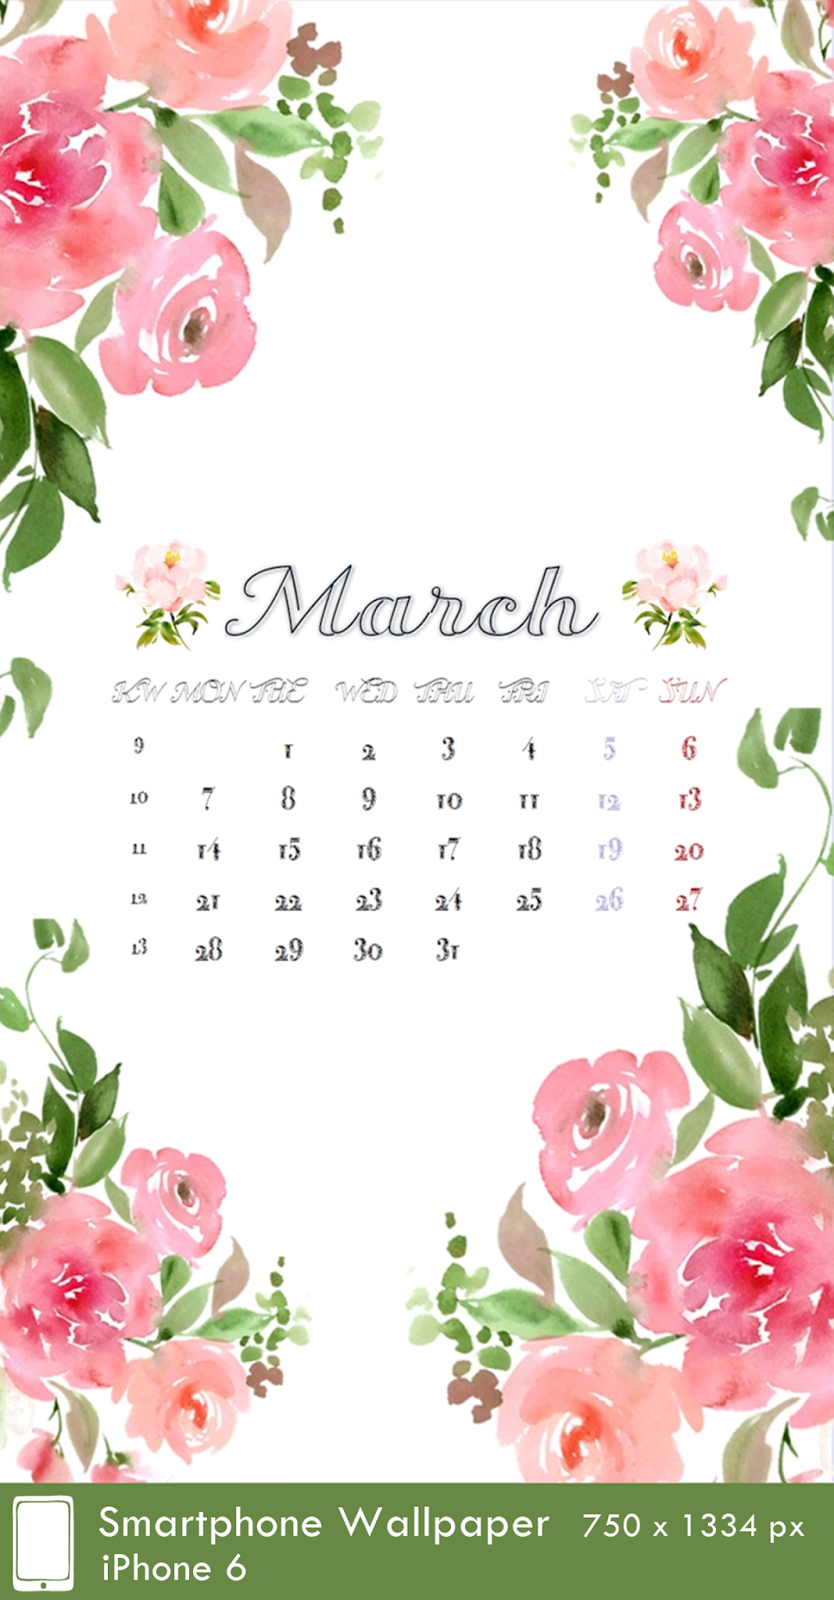 iPhone 6 Wallpaper 750 x 1334px Calendar 3 March 2016 planner in 834x1600